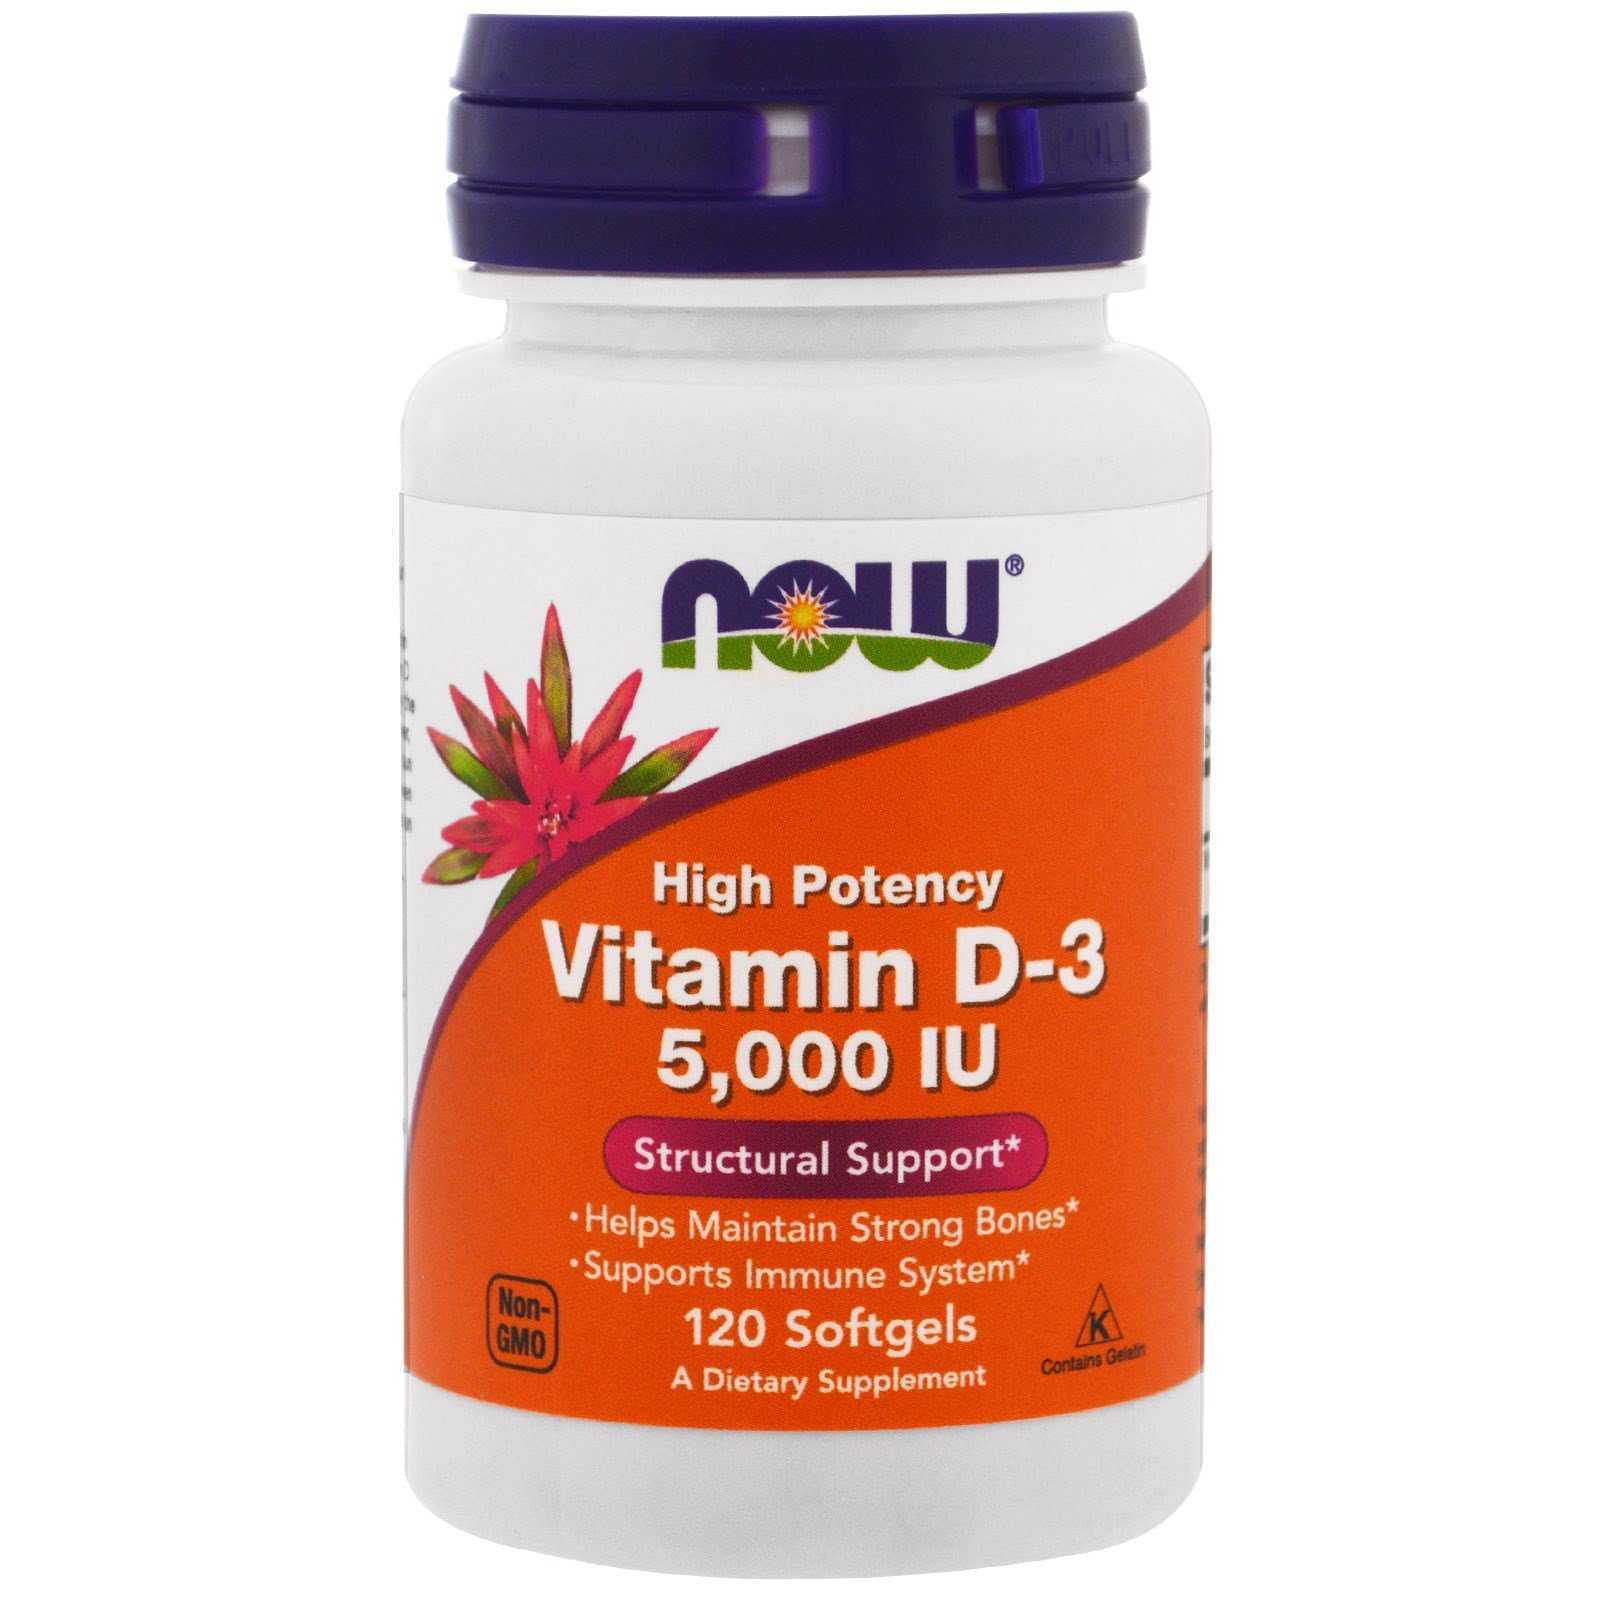 vitamina d 3 1 - Now Foods - Vitamina D-3 5,000 IU 120 Softgels (Produto Importado)